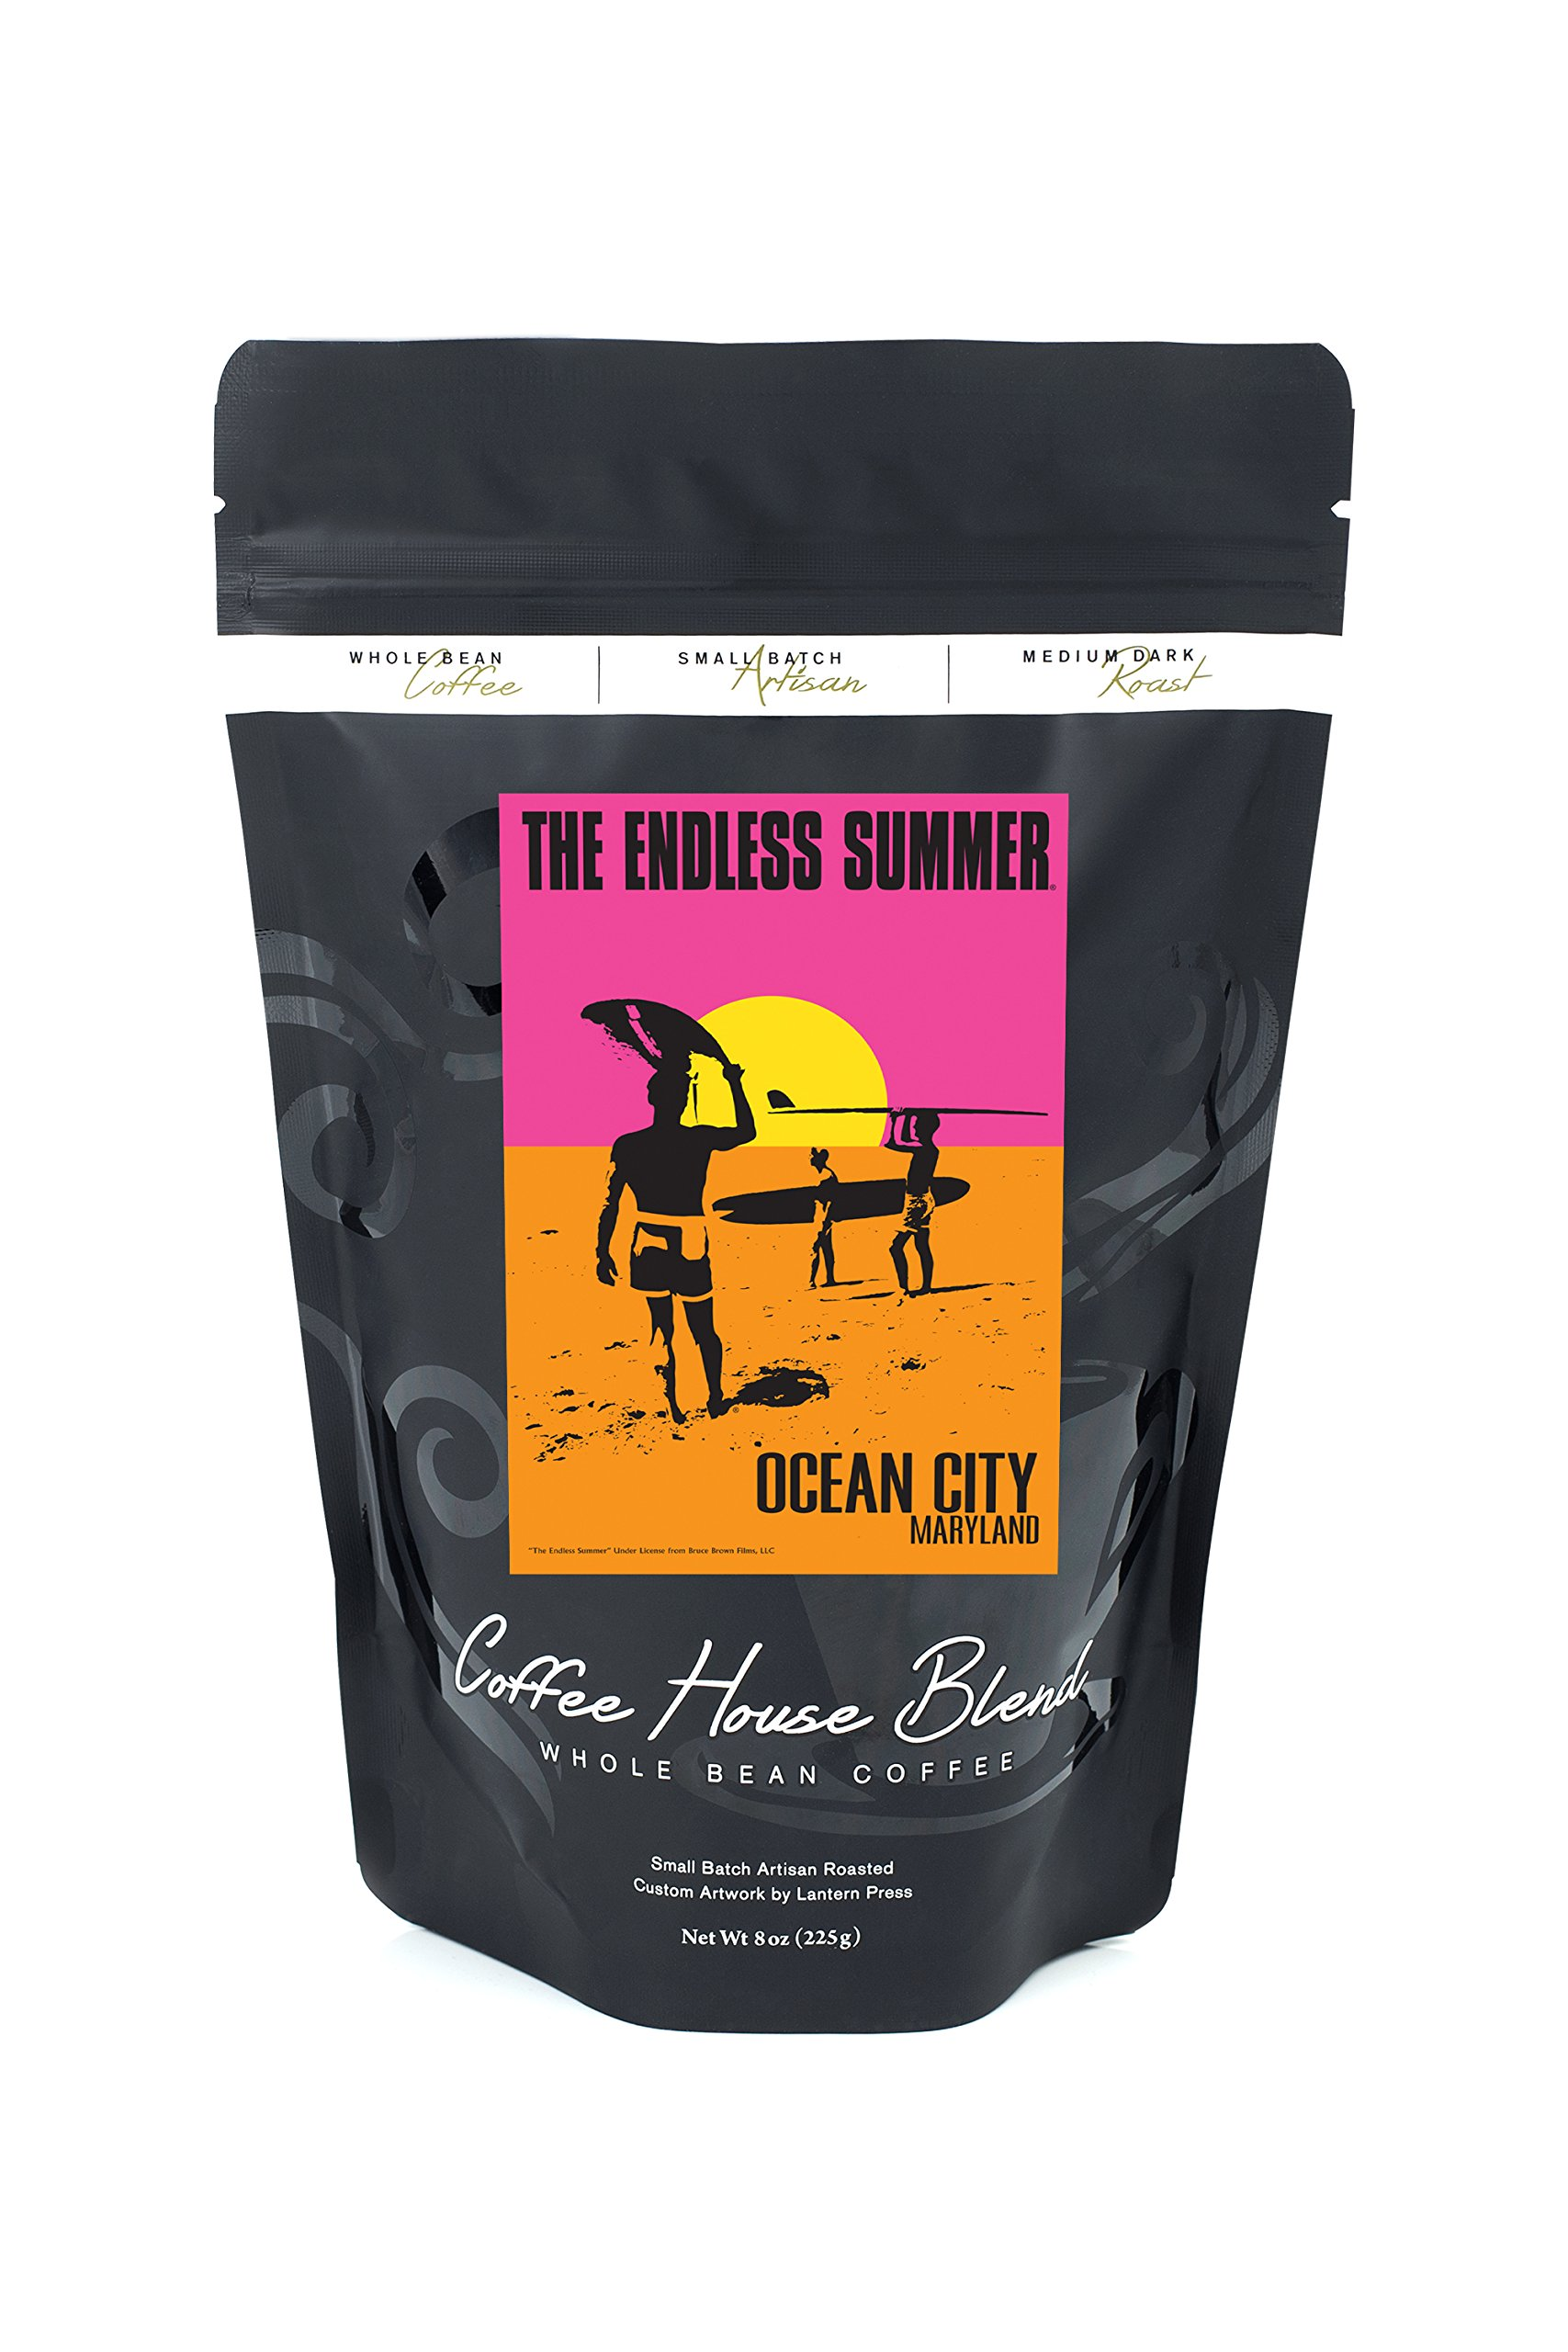 Ocean City, Maryland - The Endless Summer - Original Movie Poster (8oz Whole Bean Small Batch Artisan Coffee - Bold & Strong Medium Dark Roast w/ Artwork)